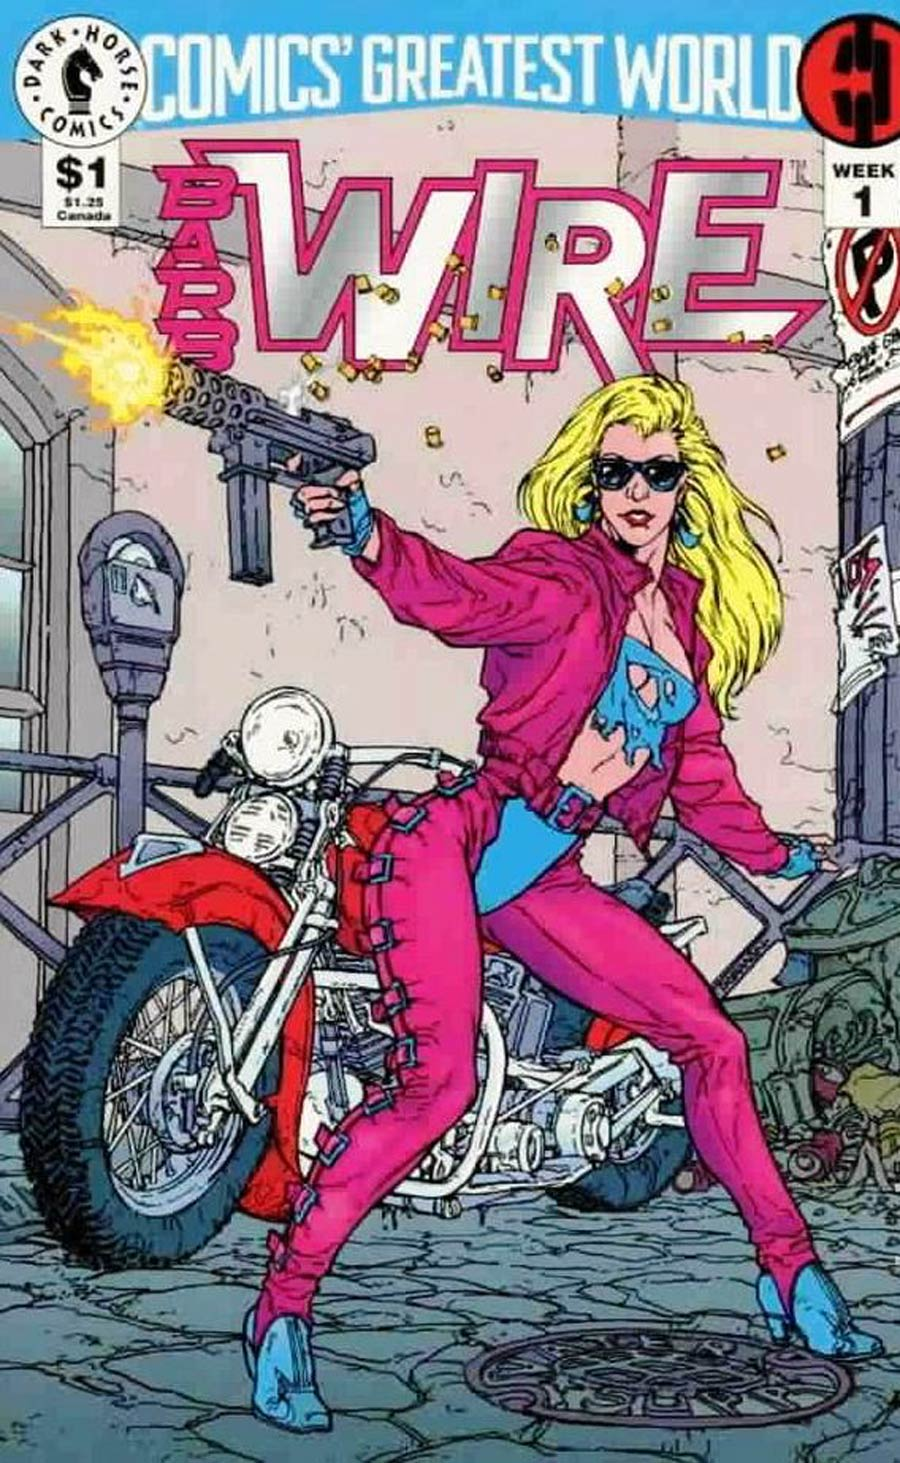 Comics Greatest World Steel Harbor Week #1 Barb Wire Cover A